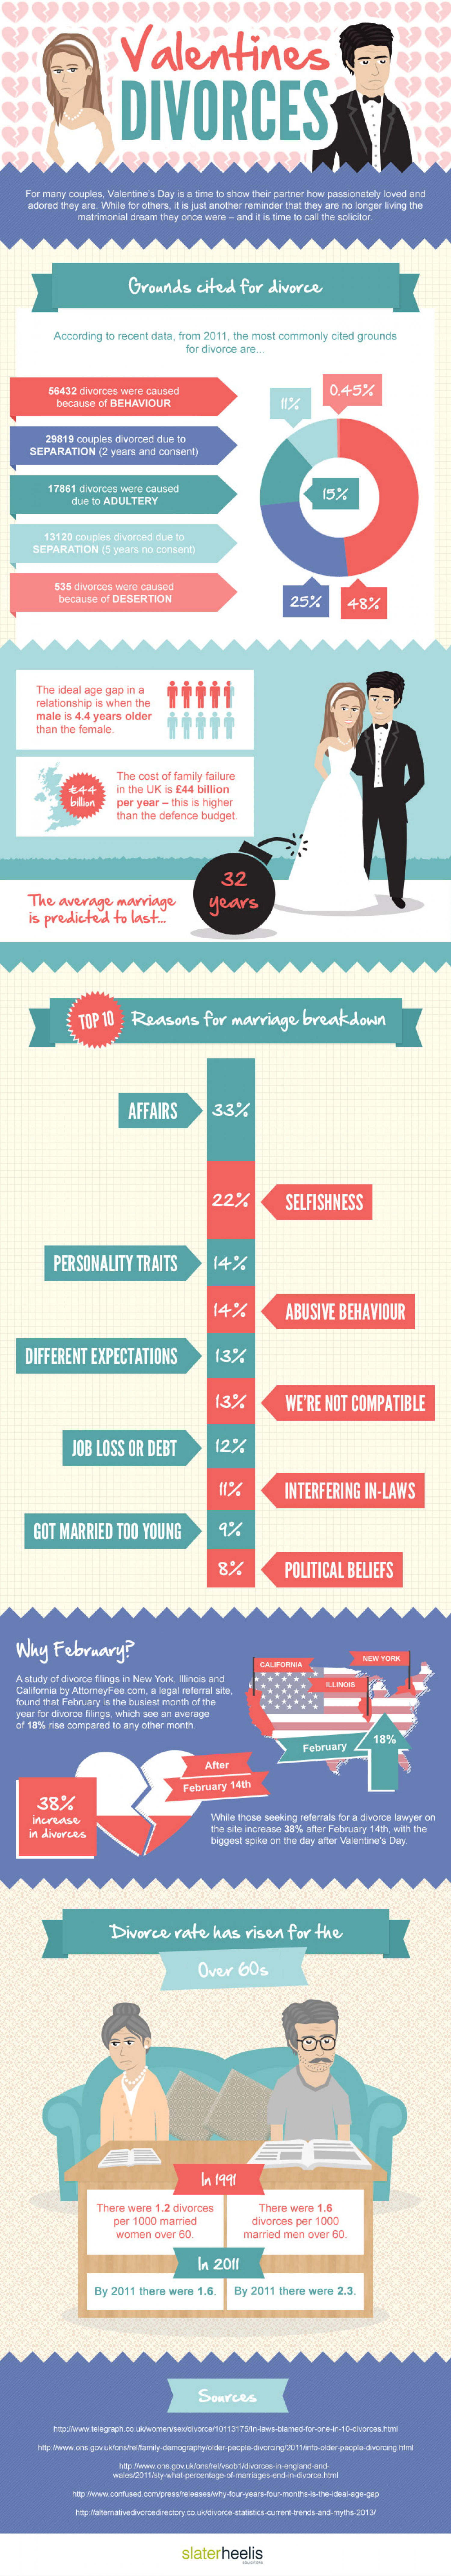 Why do divorces peak after Valentine's Day? Infographic